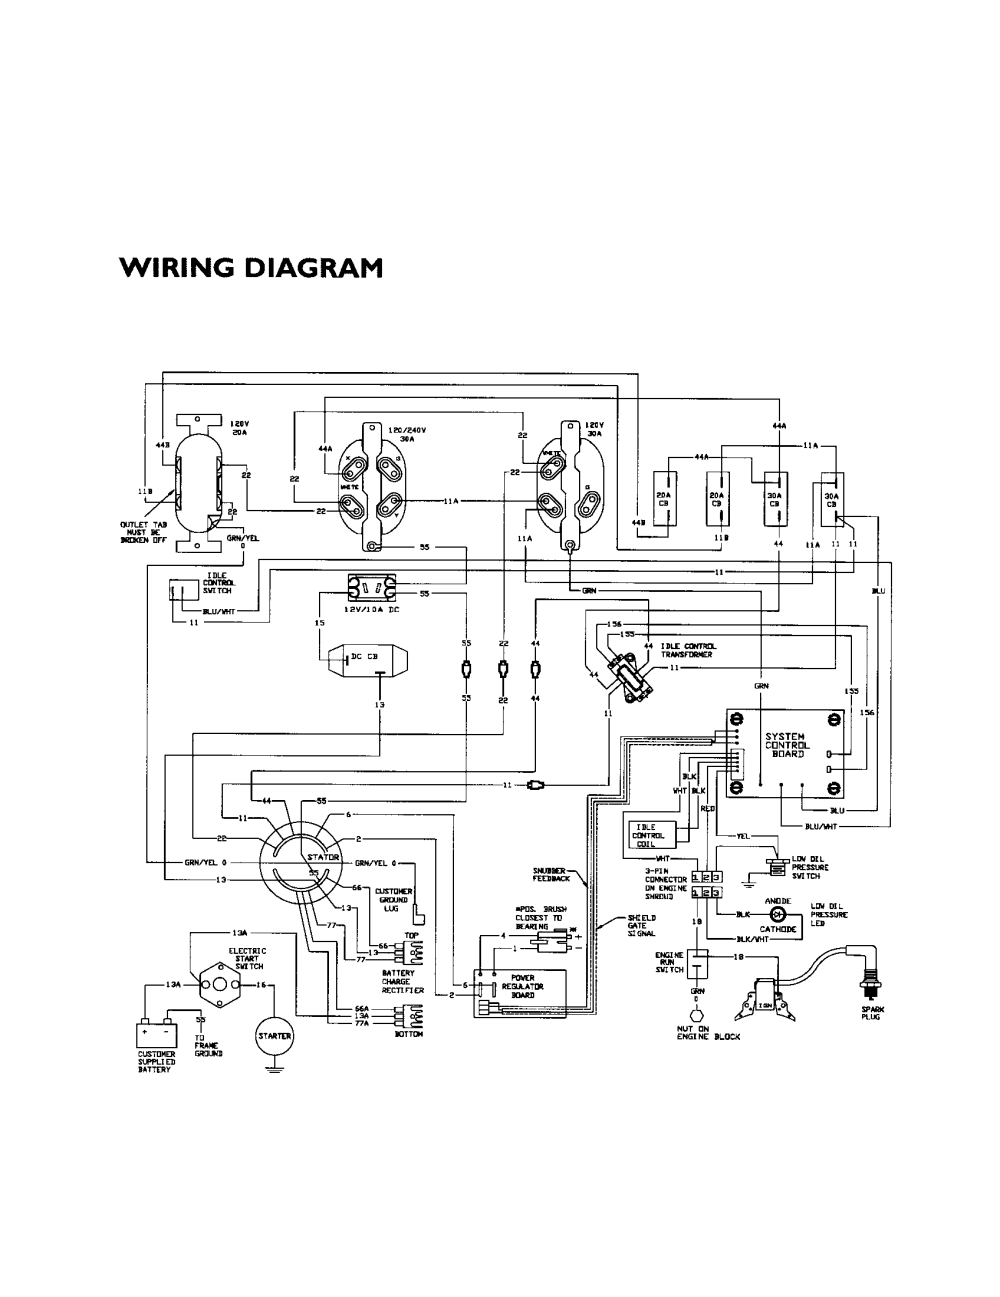 medium resolution of generac control wiring wiring diagram expert generac nexus controller wiring diagram generac control wiring